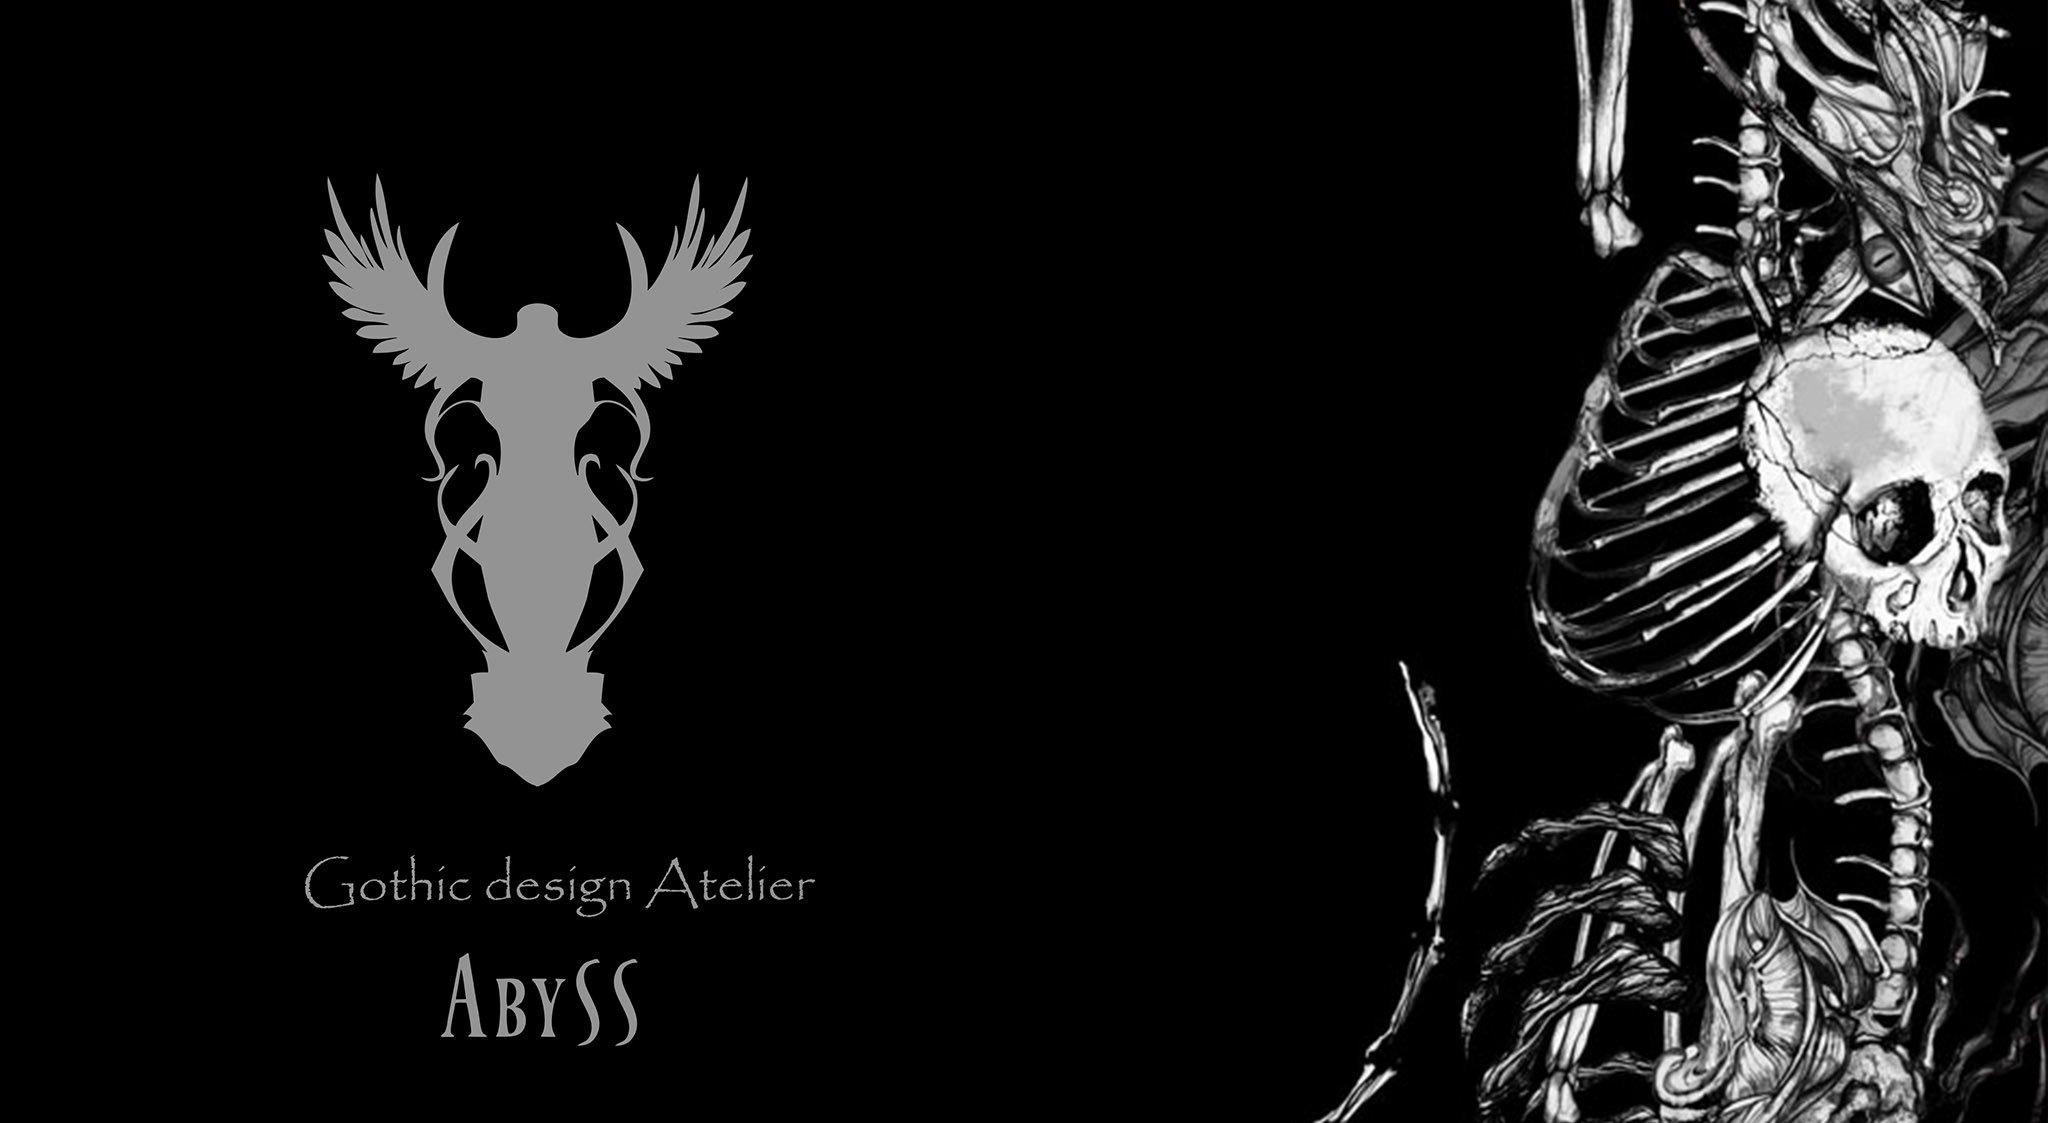 abyssdesign